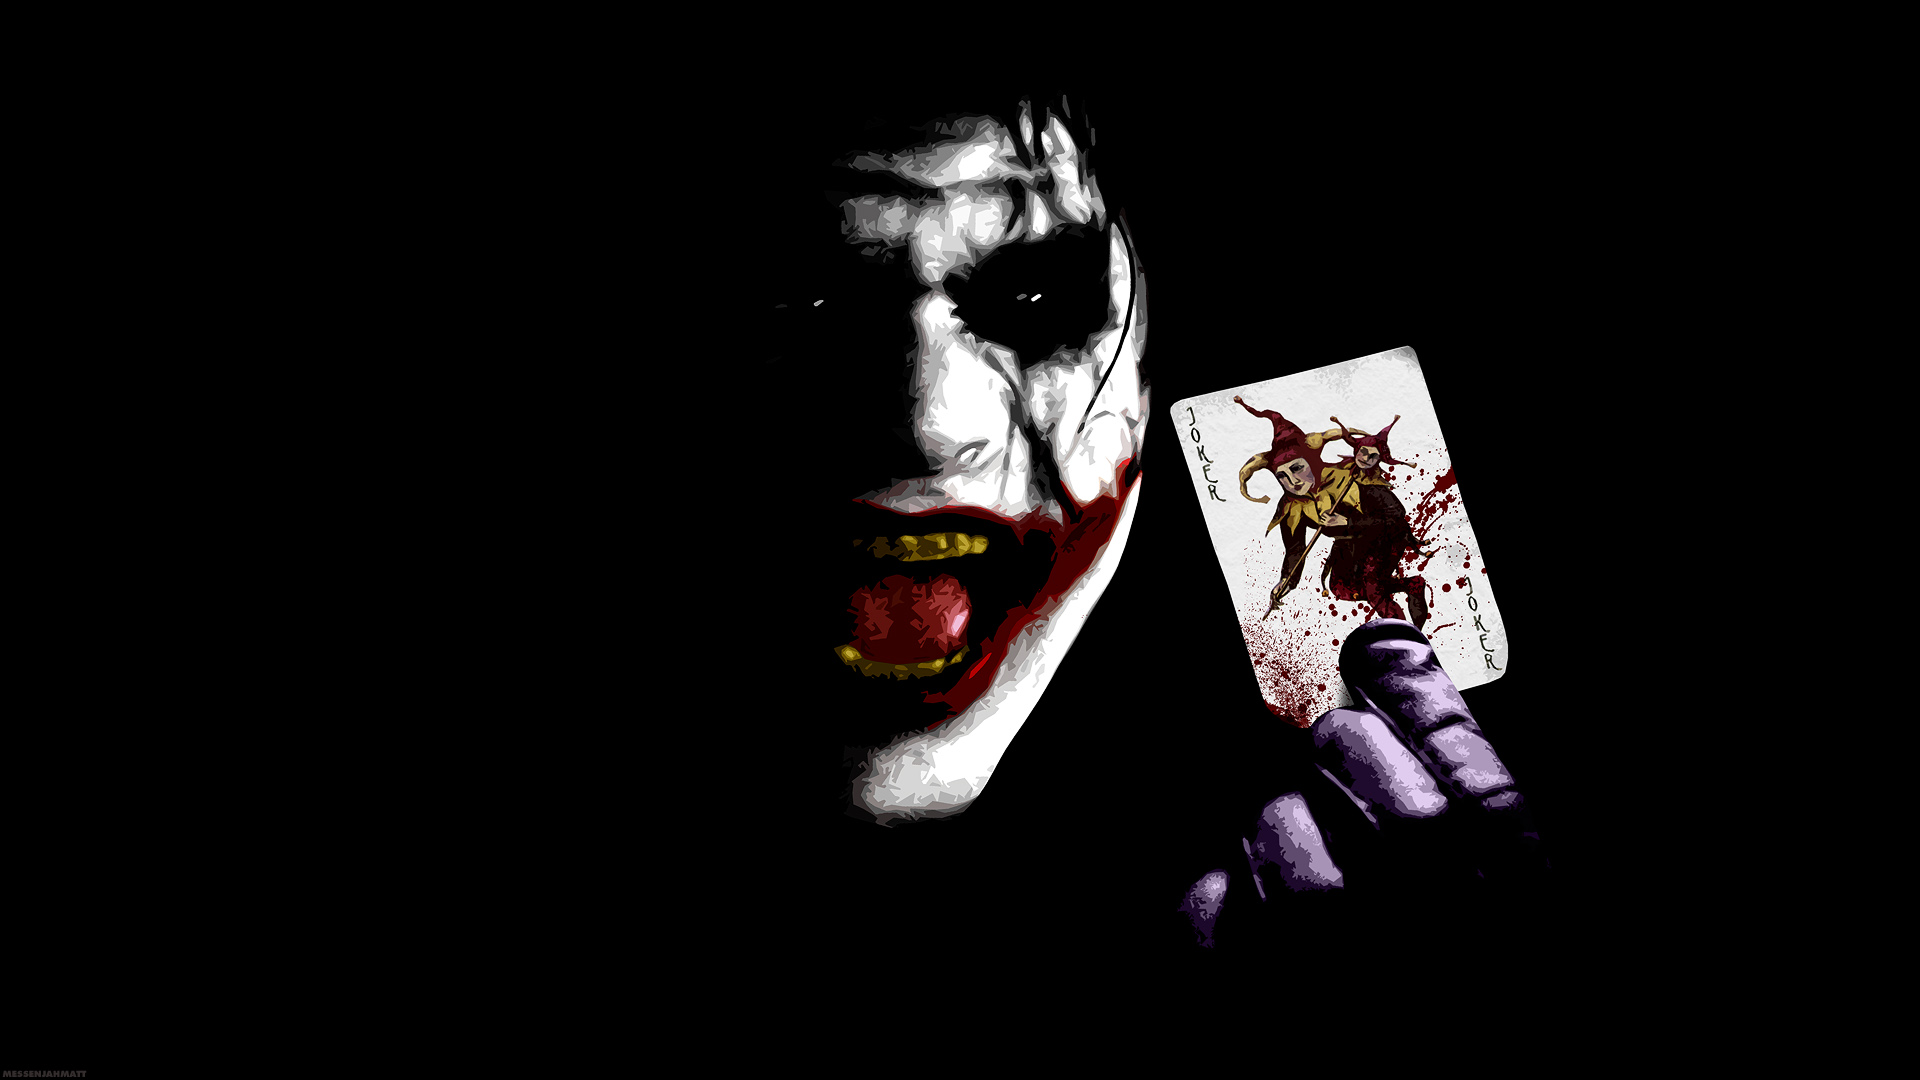 Joker Card Wallpaper HD